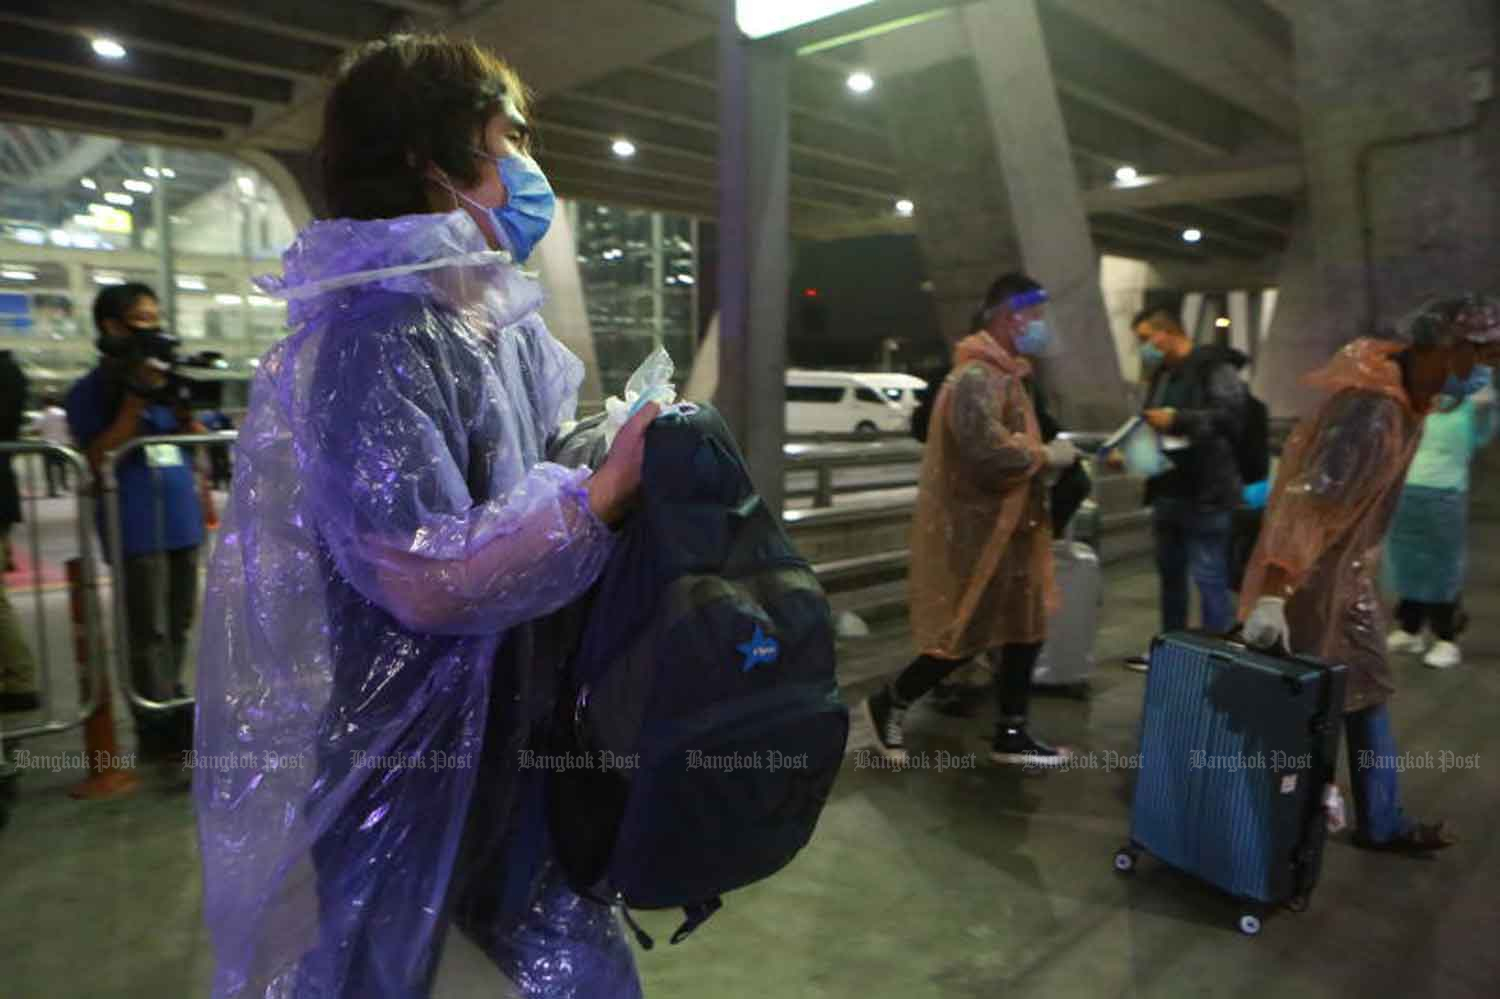 Chinese tourists, the first such arrivals since commercial flights were banned in April to combat the coronavirus pandemic, arrive at Suvarnabhumi airport on Tuesday, when the country logged nine new Covid-19 cases. (Photo: Somchai Poomlard)